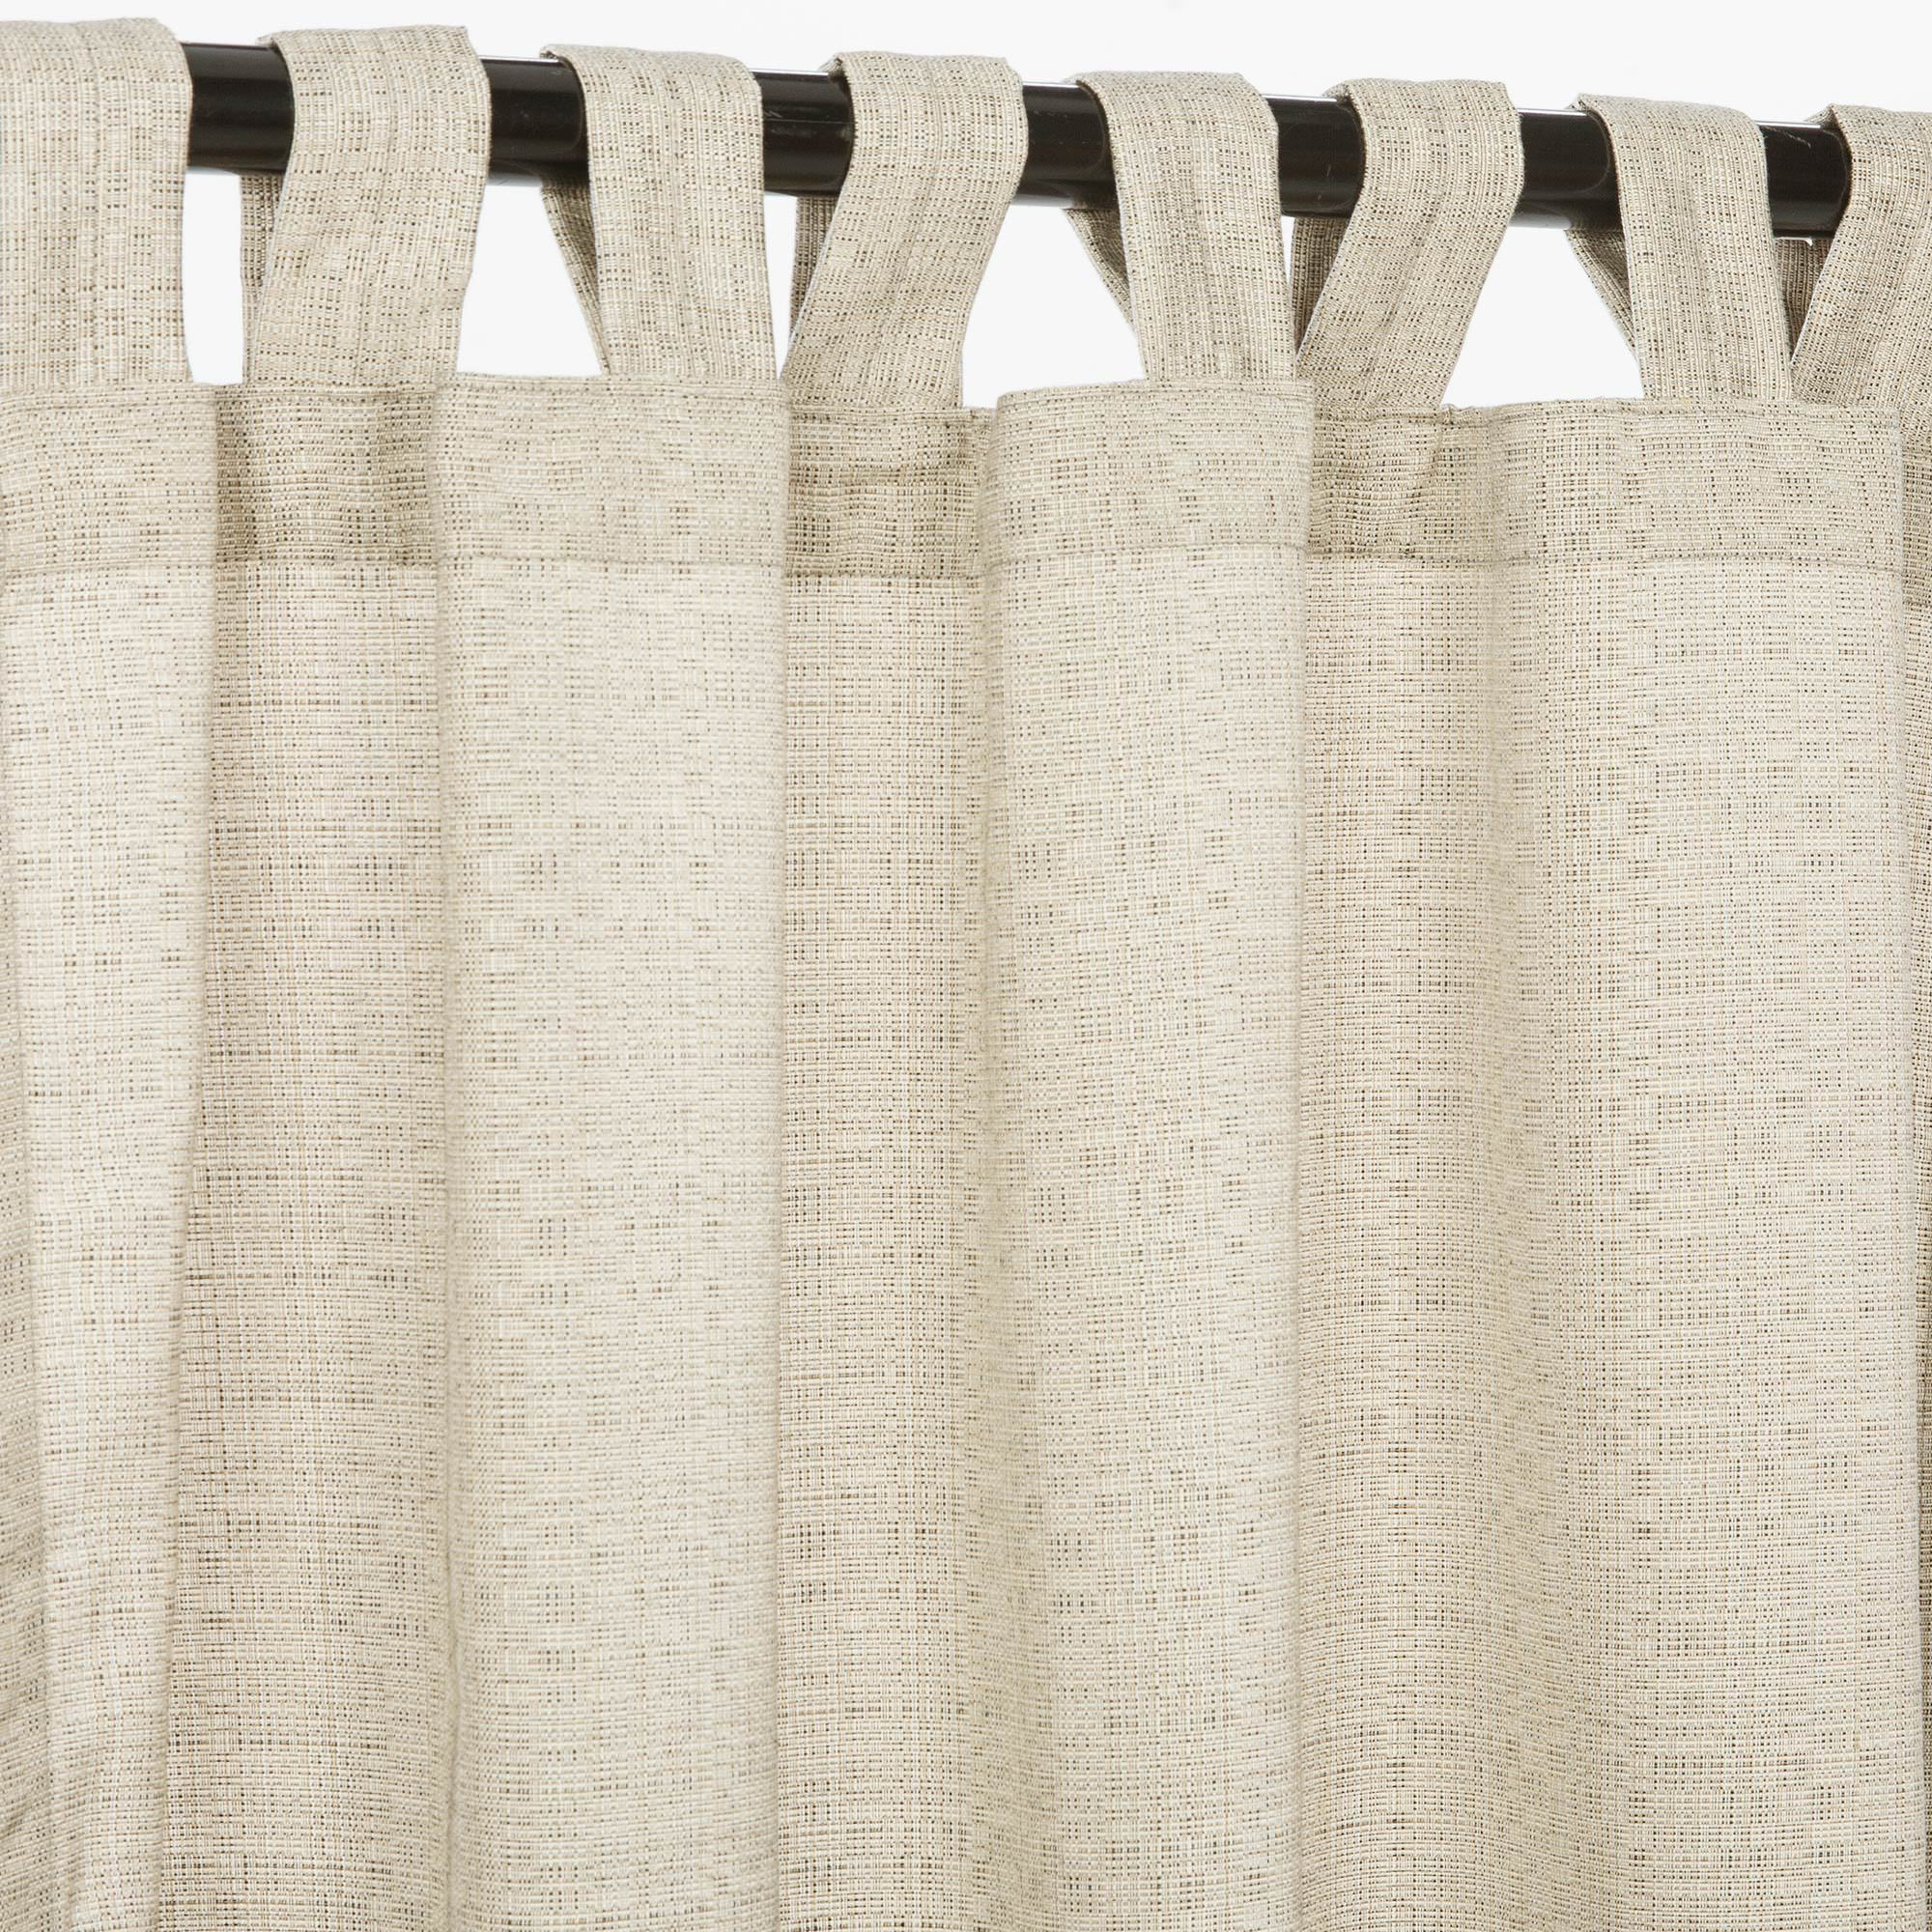 treatment hilja ideas rod room sanela captivating decorating most neutral ikea home style blackout curtains cu the for living gallery decoration grey visited holder window with added white featuring in perfect delightful covering curtain gray terrific designs black metal as linen stylish